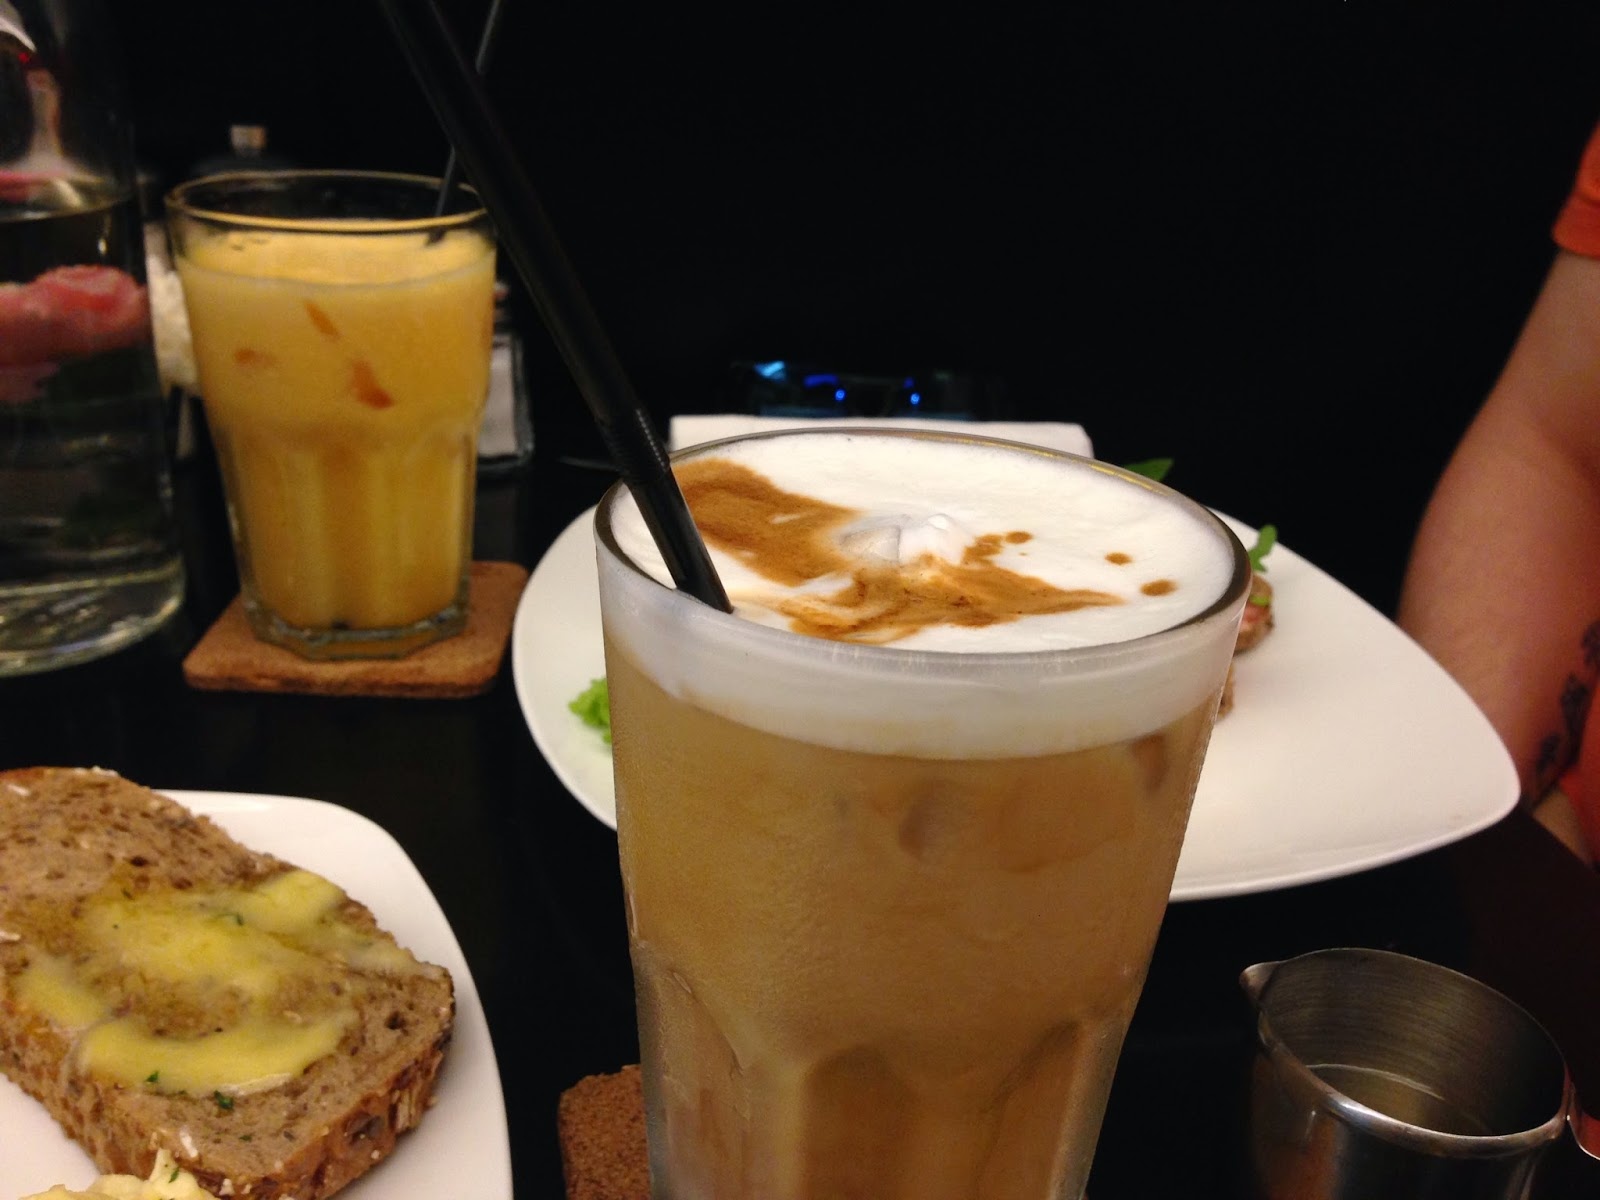 Iced Latte, Fresh Orange Juice